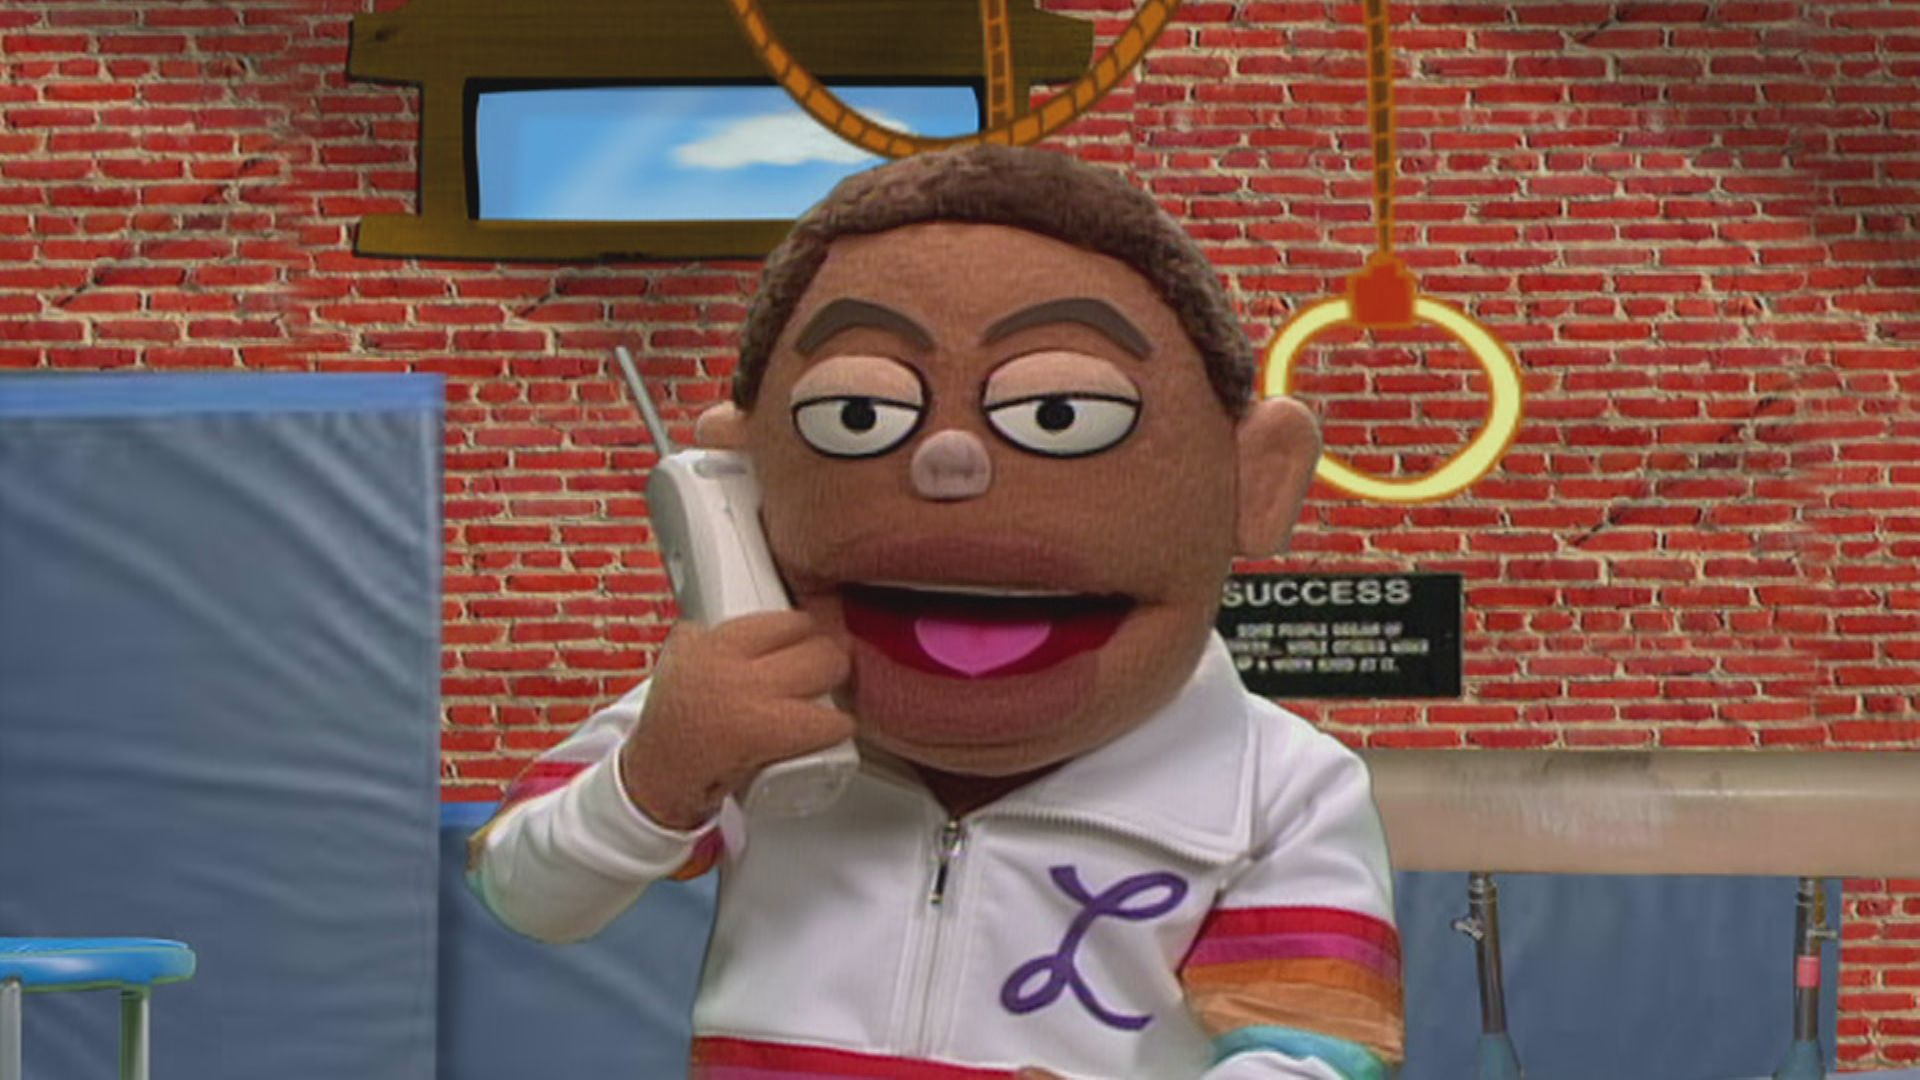 Crank Yankers Season 4 Ep 8 Jimmy Kimmel Nick Cannon Full Episode Comedy Central Find your tv provider and then sign in with your username and password. crank yankers season 4 ep 8 jimmy